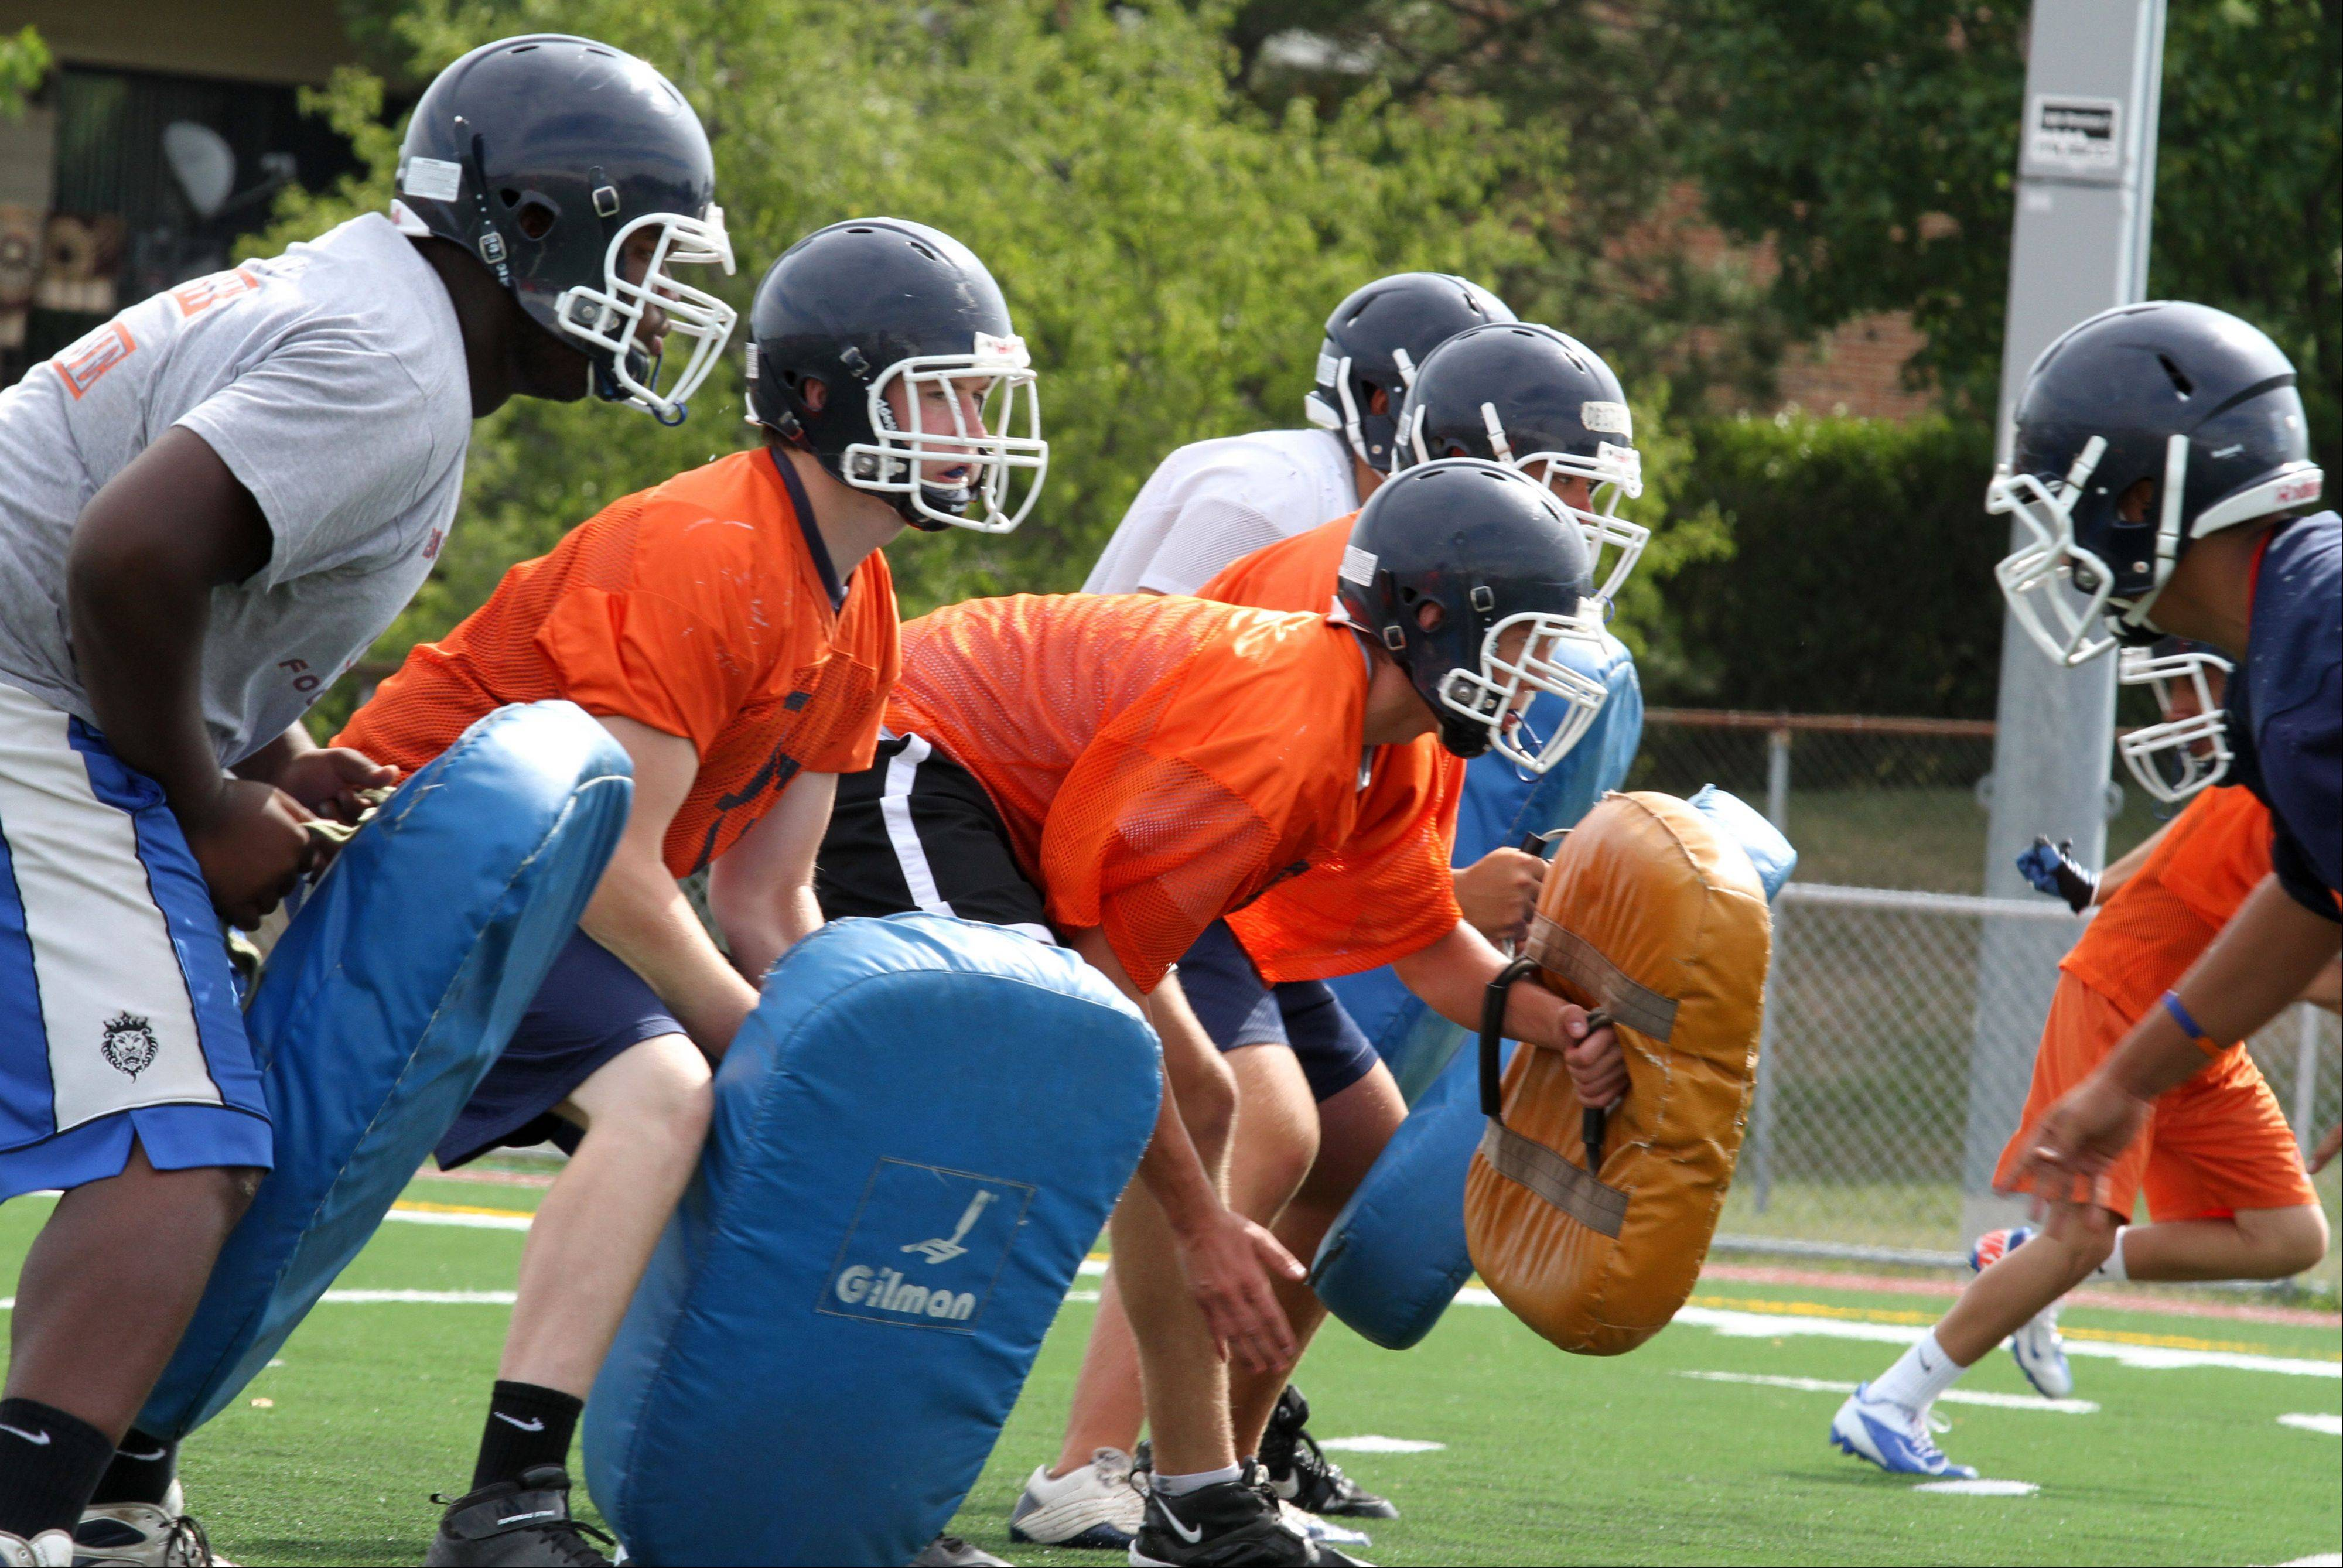 Lineman practice with dummy pads during the first day of football practice at Buffalo Grove High School on Wednesday. The first practice was also the team's first chance to play on the new synthetic field installed this summer at BGHS. The first game of the season is Aug. 24.